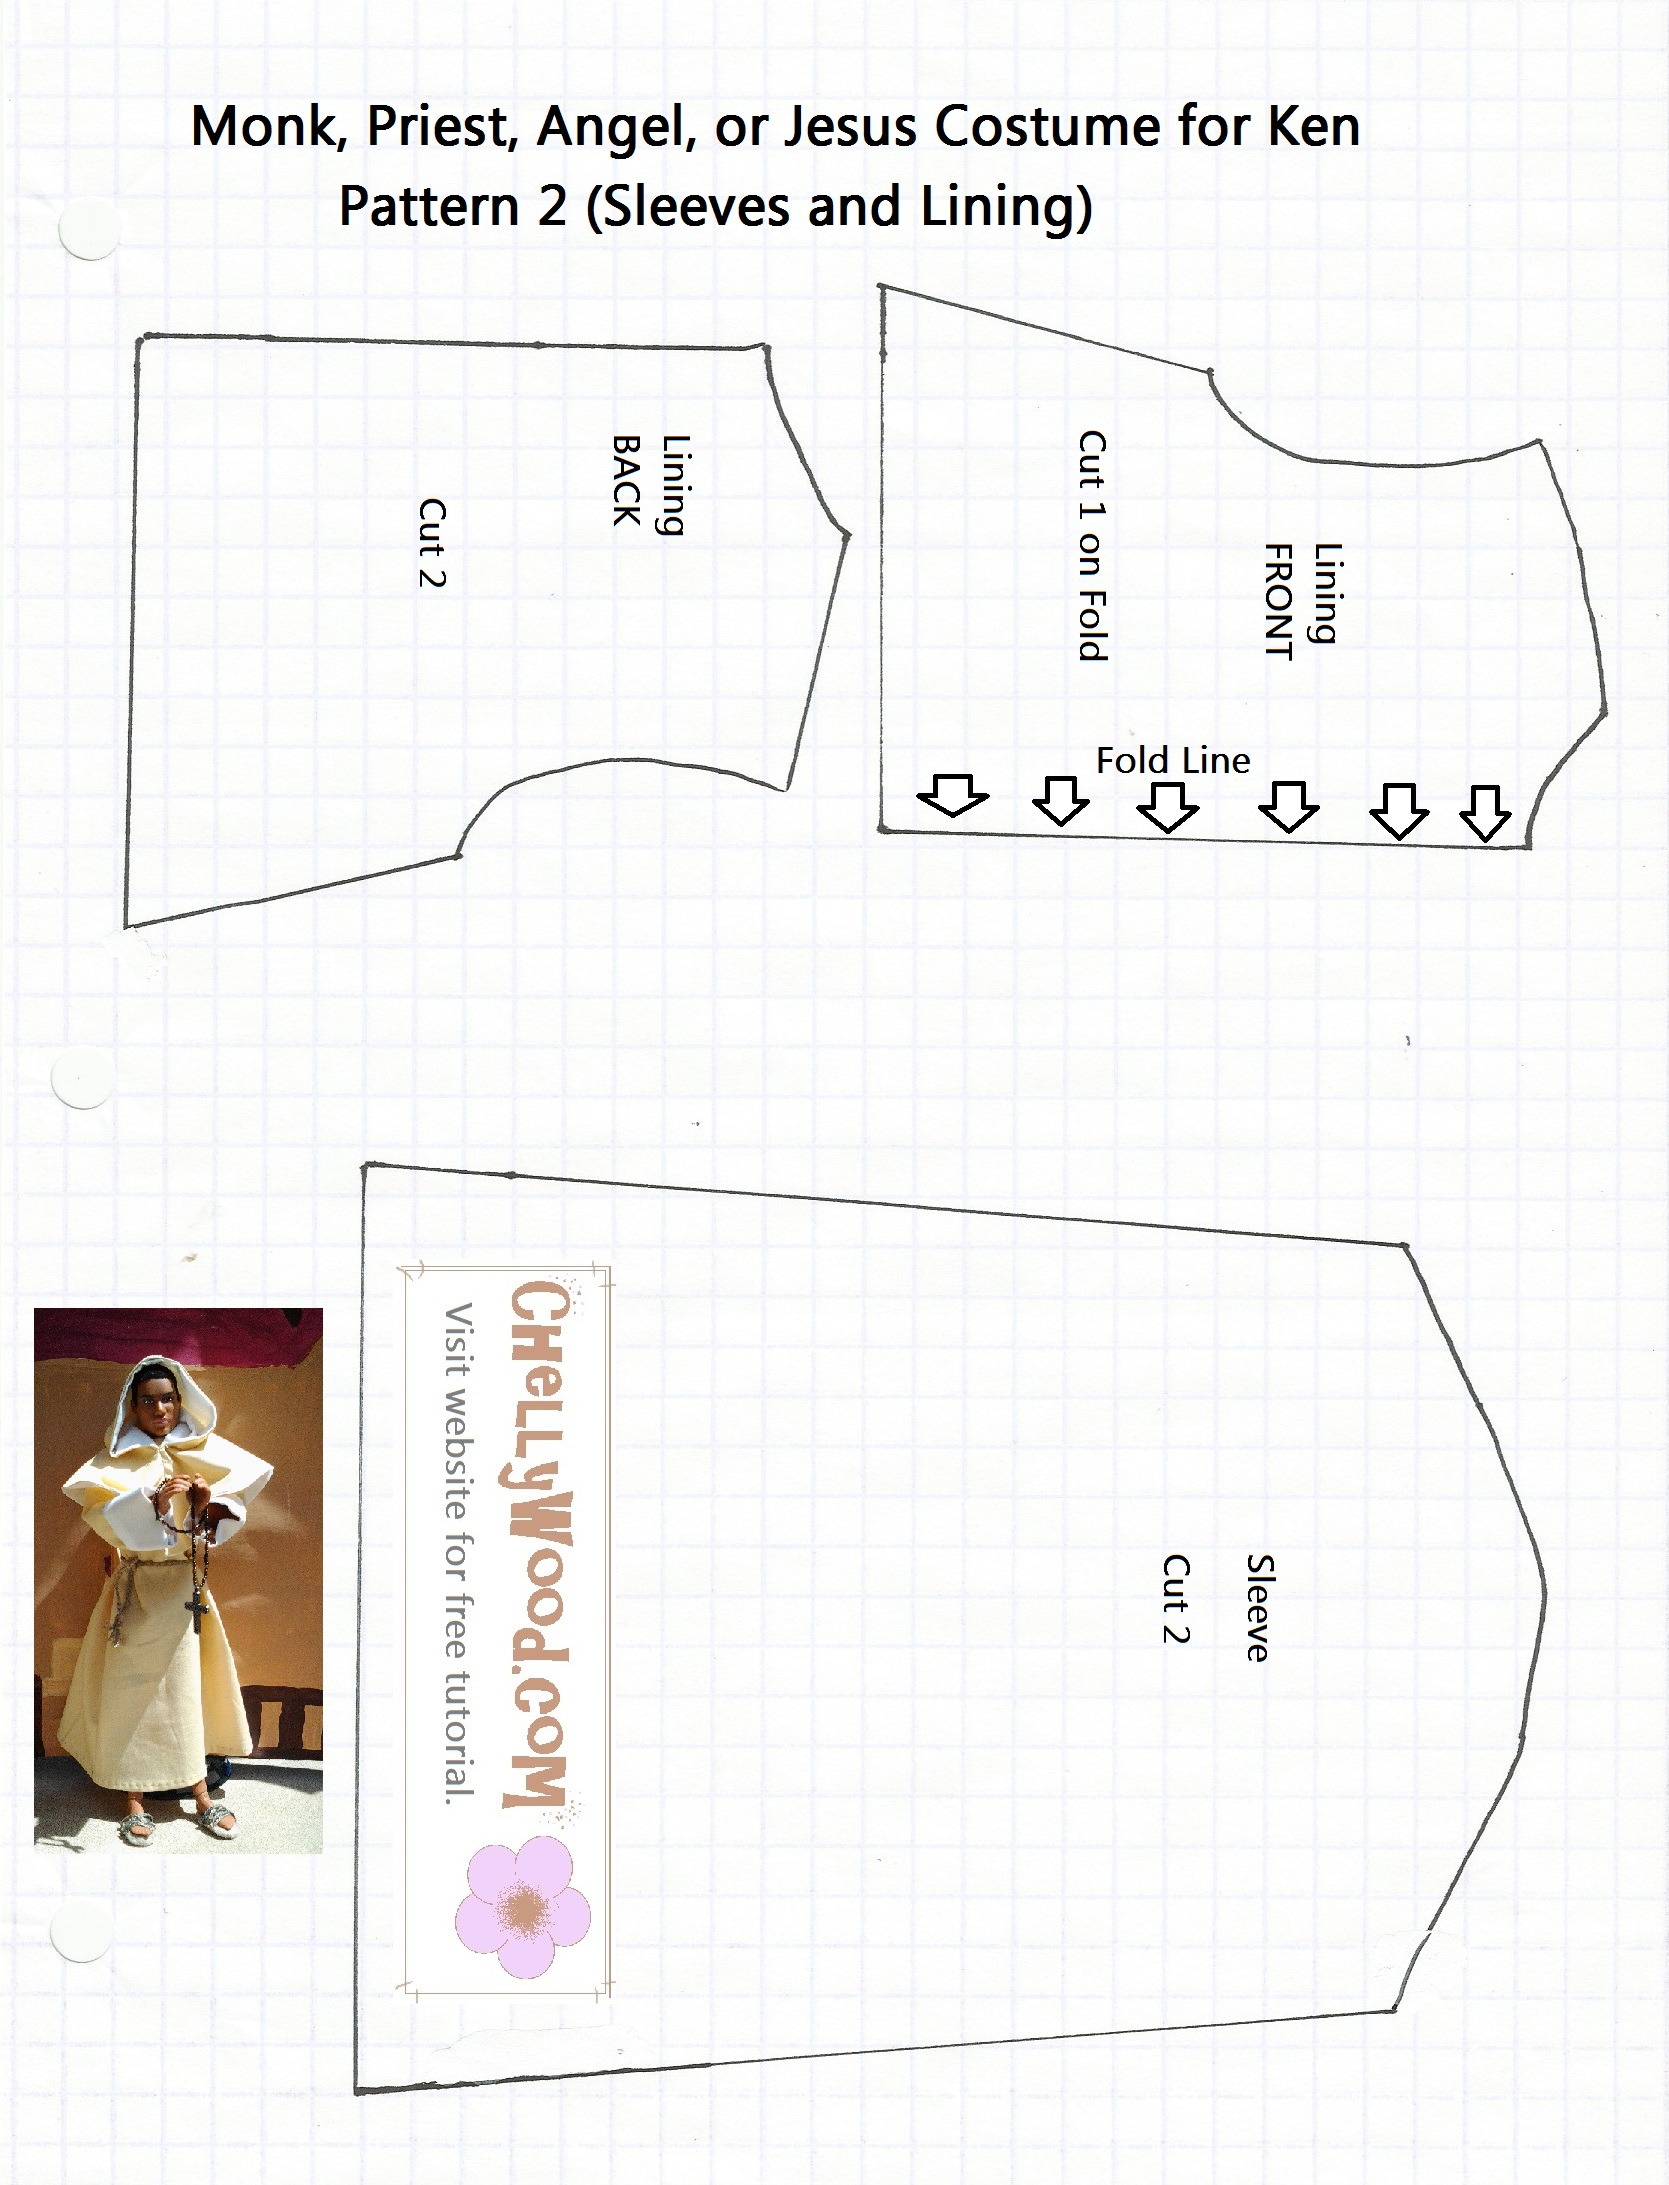 Free printable barbie doll clothes patterns chelly wood pattern 2 for monks robe jeuxipadfo Gallery